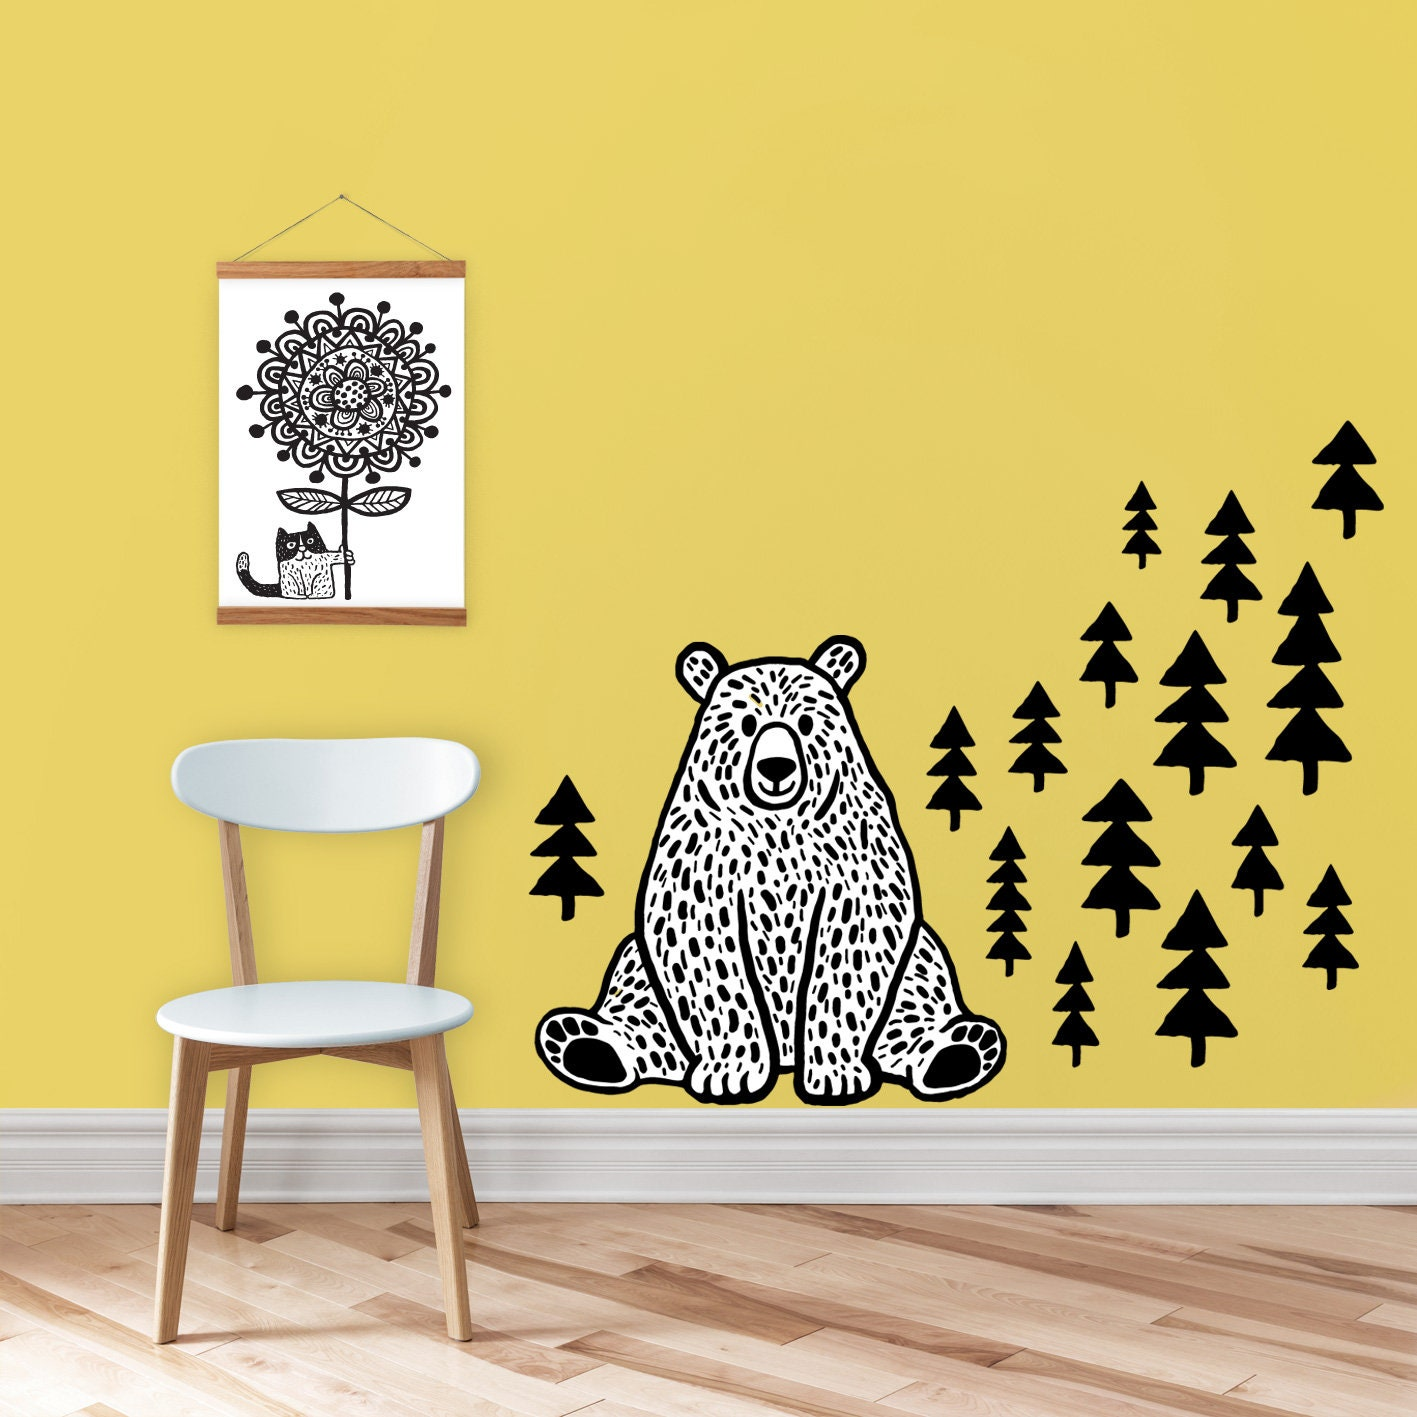 Bear Wall Decal Wall Sticker Animal Mountains Vinyl Home